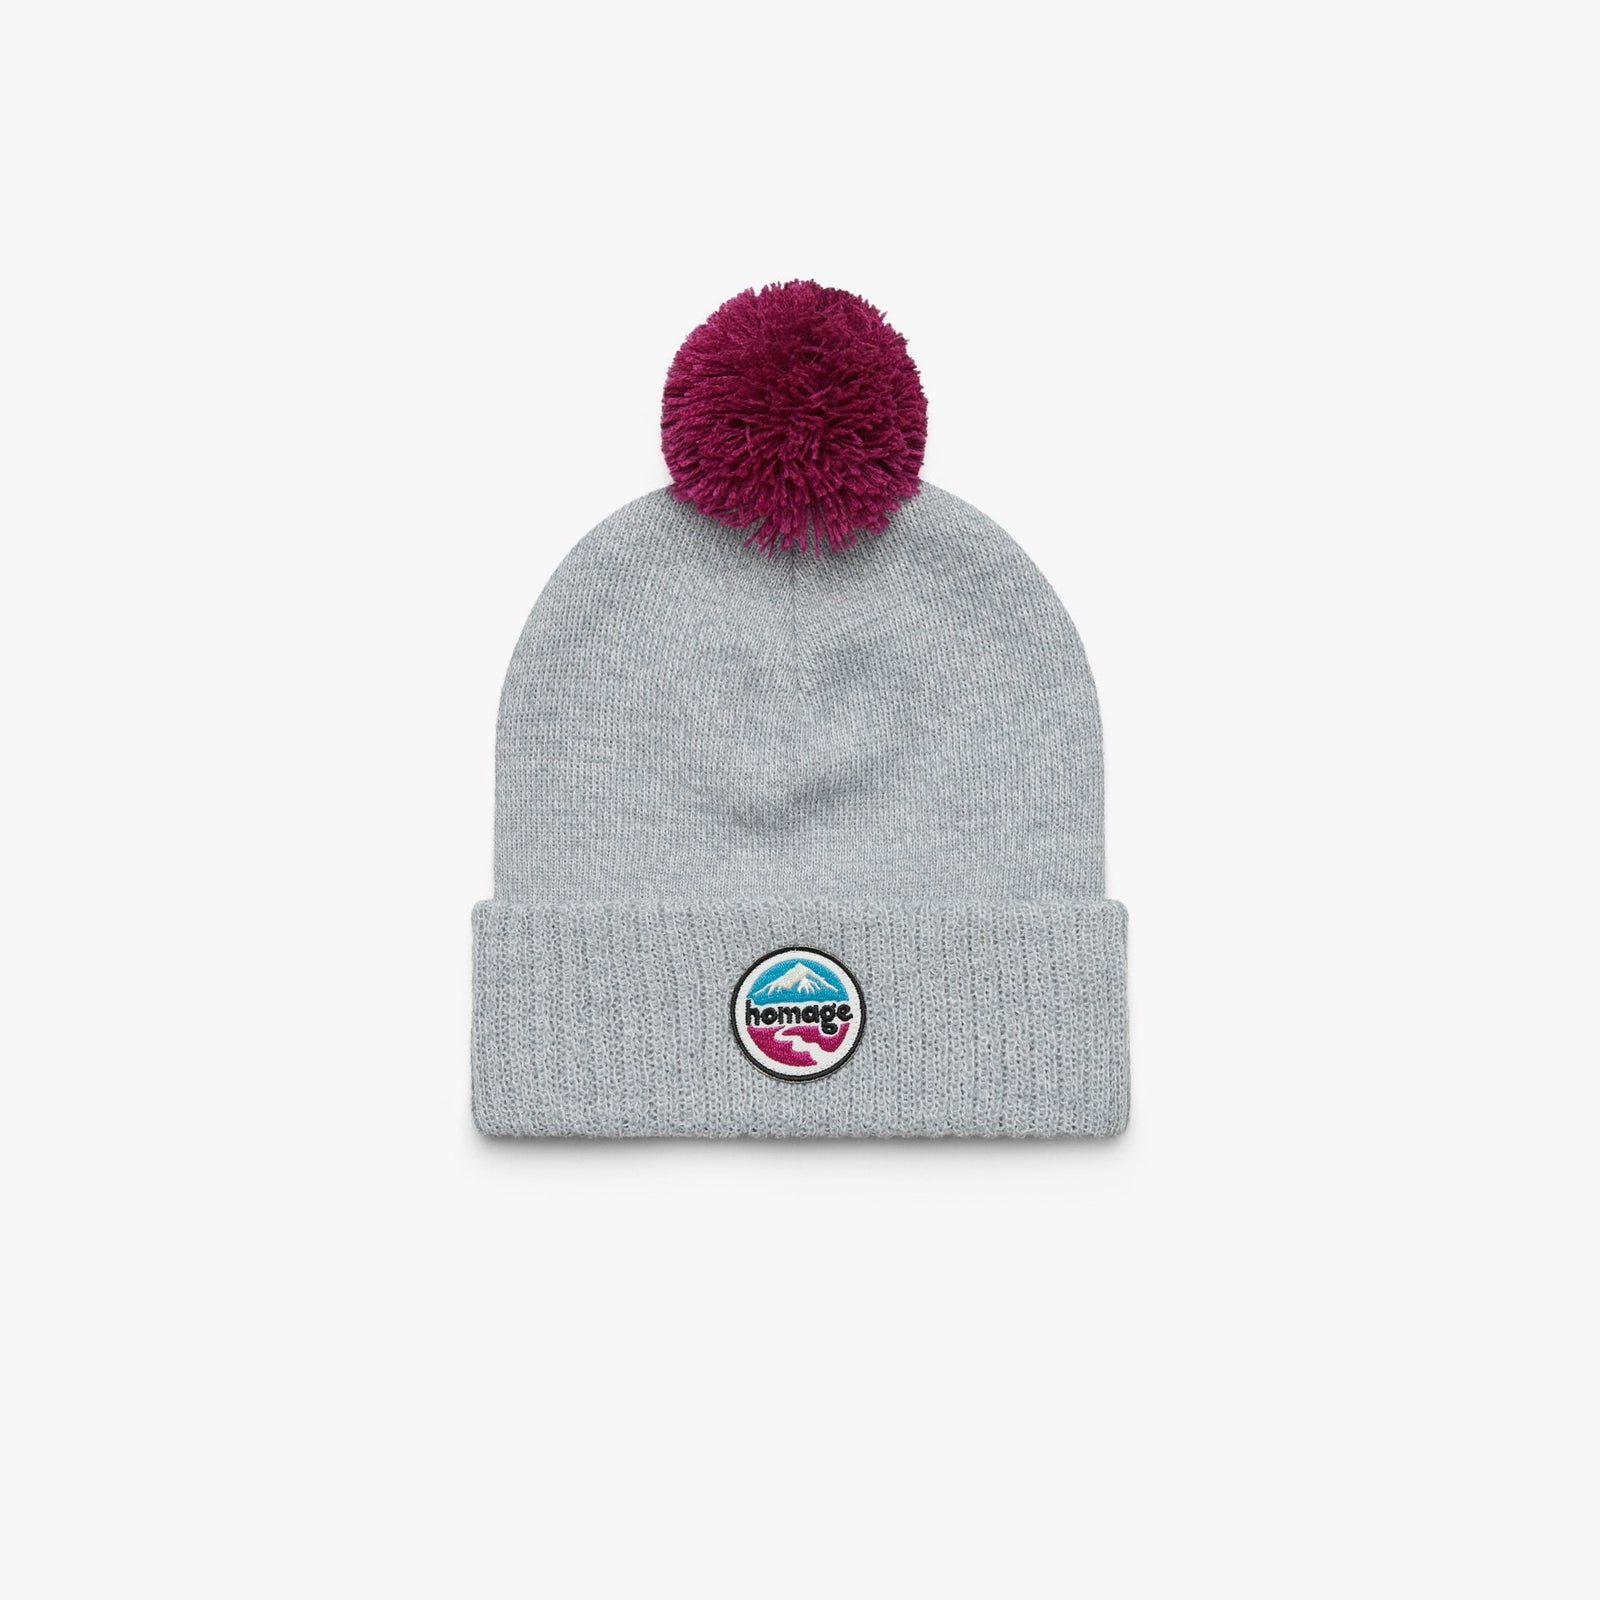 HOMAGE Outdoor Pom Hat